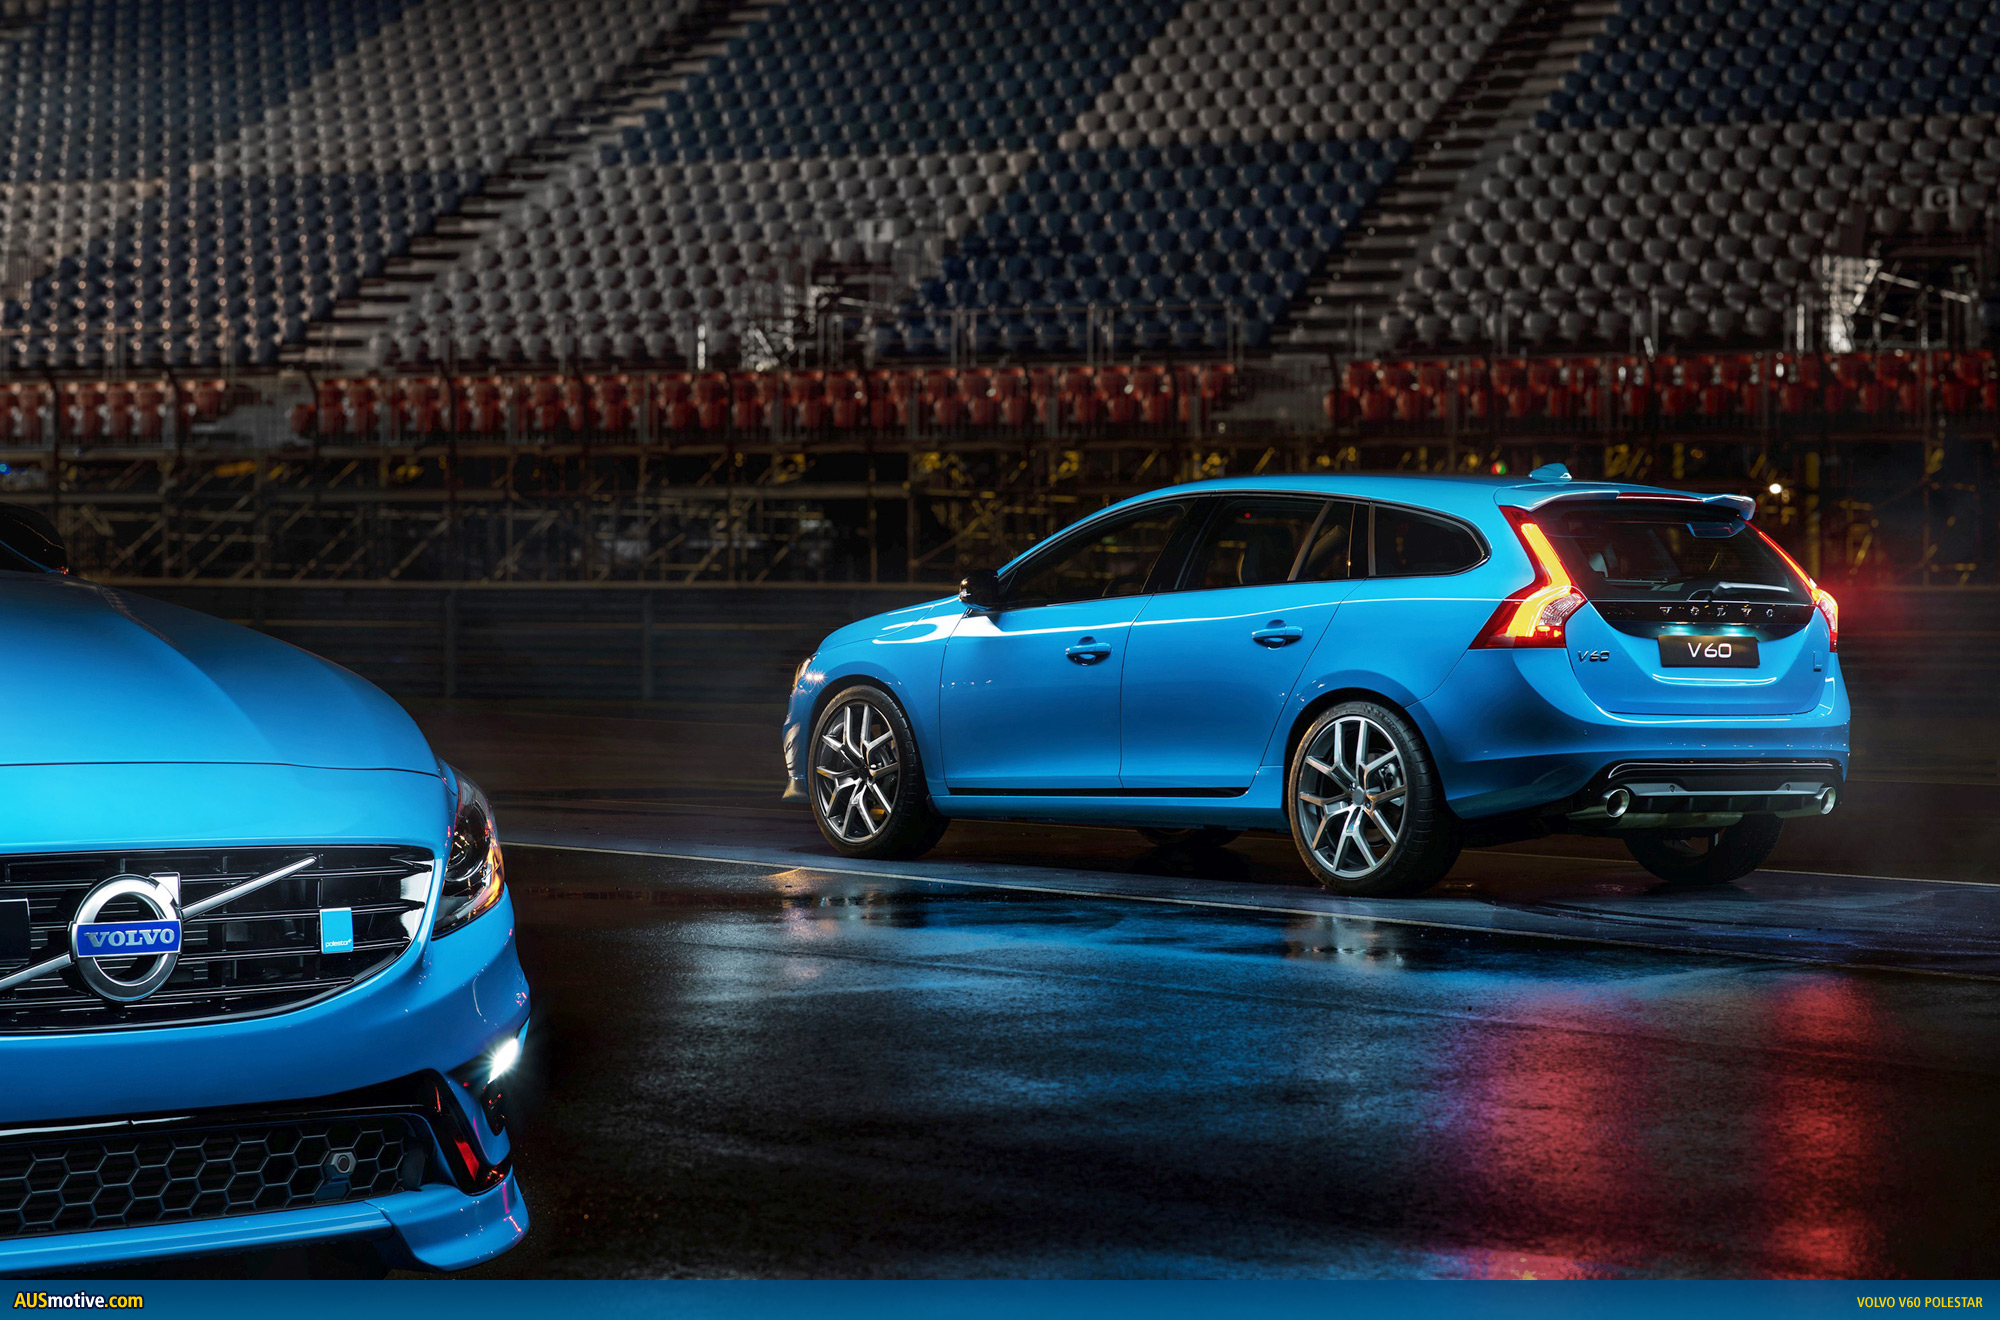 AUSmotive.com » Volvo V60 Polestar revealed